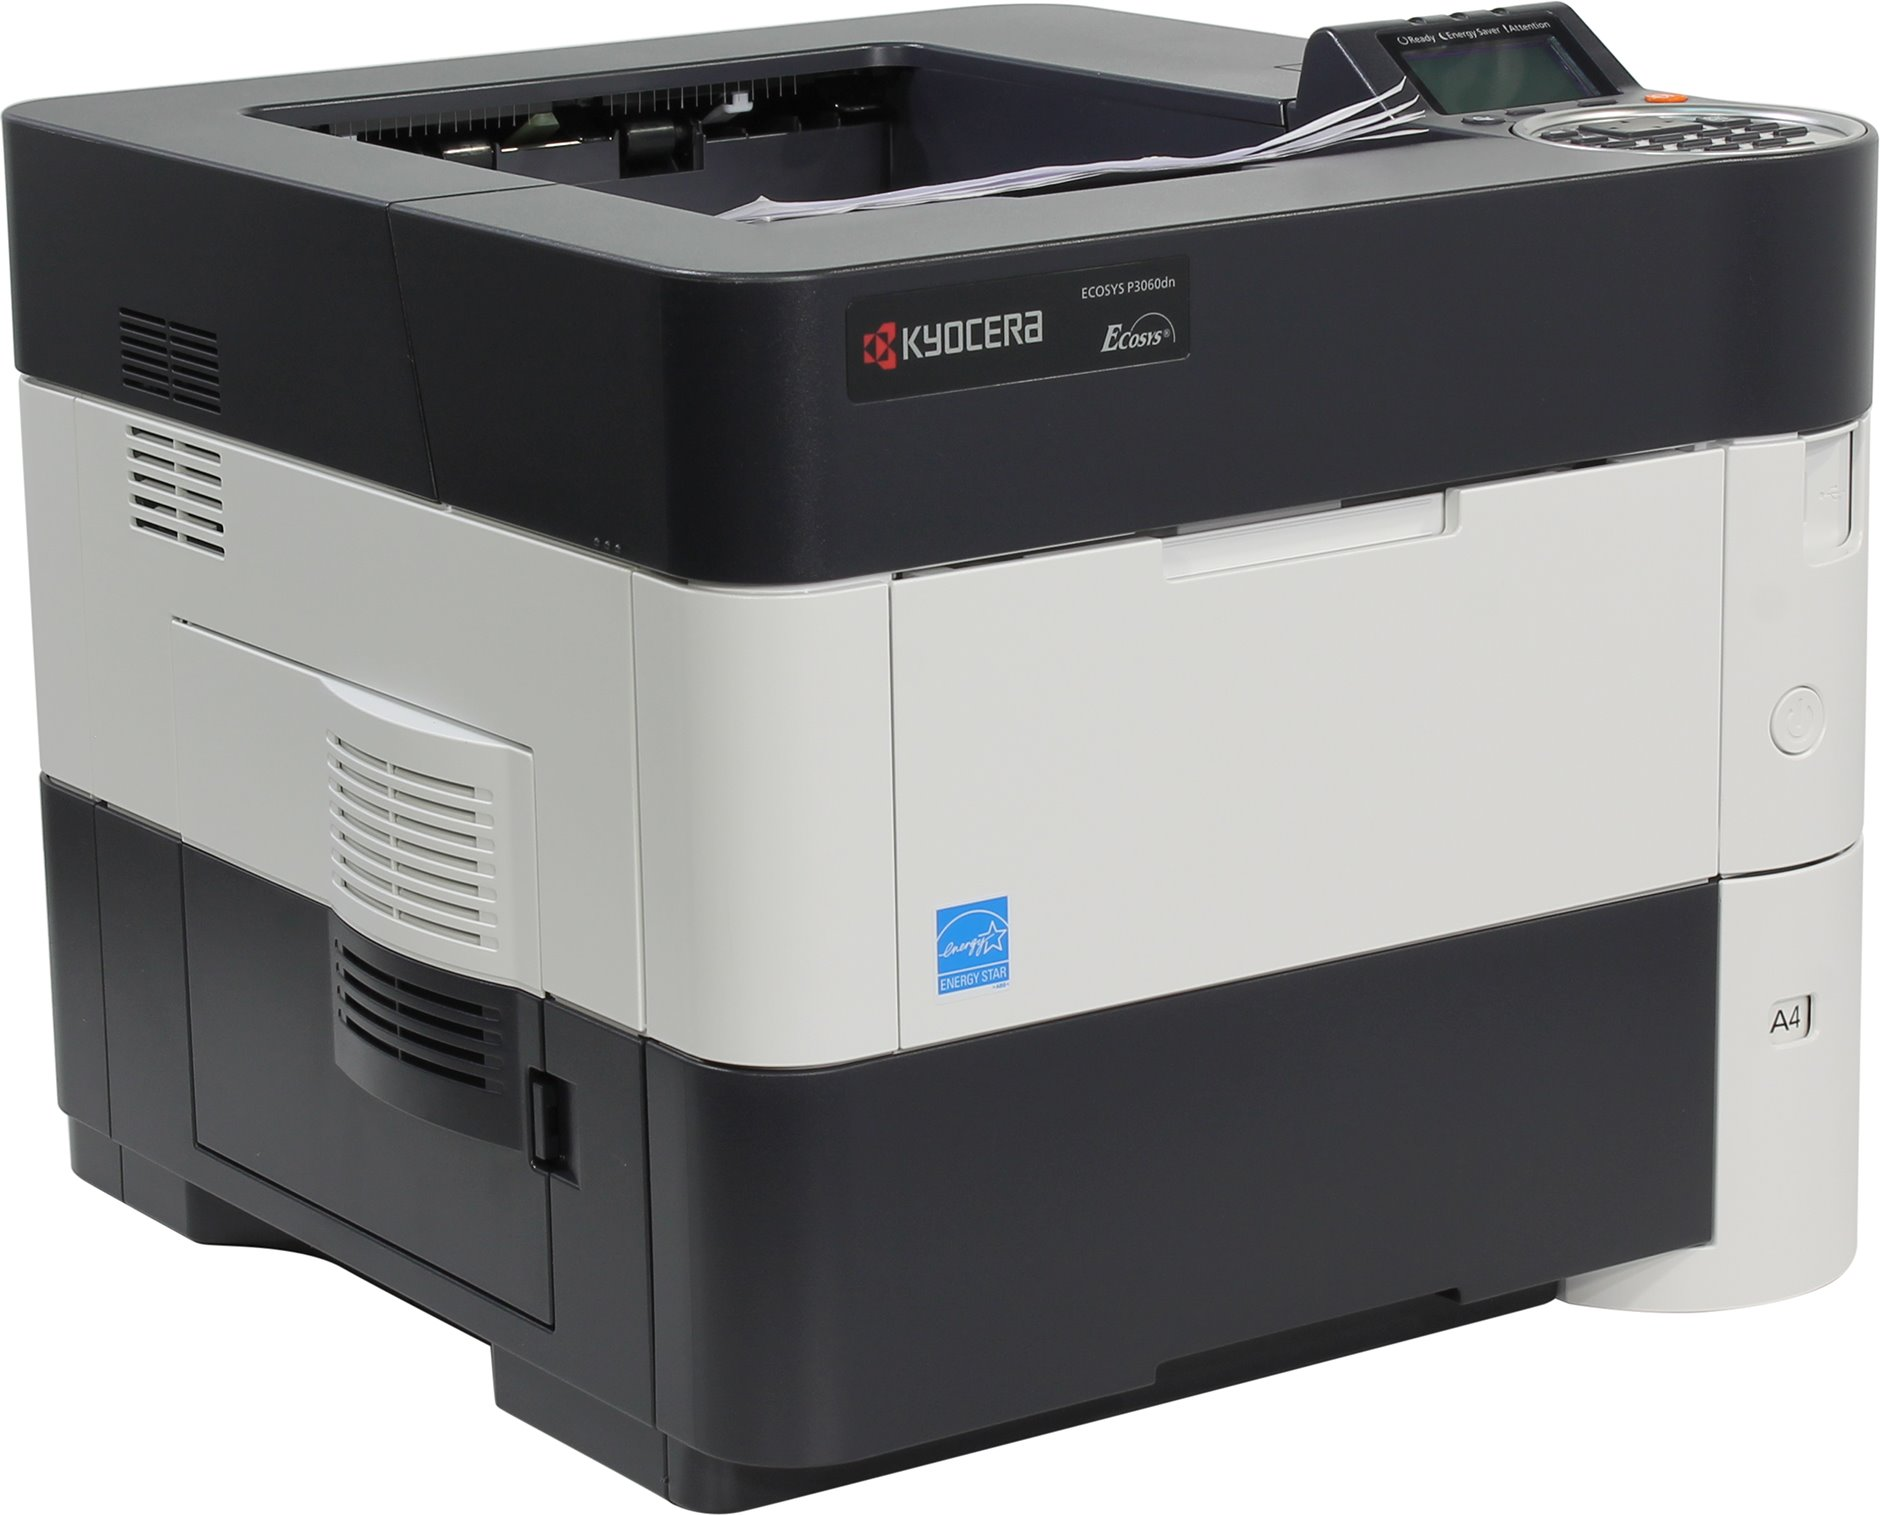 Kyocera launches range of new printers – The Recycler